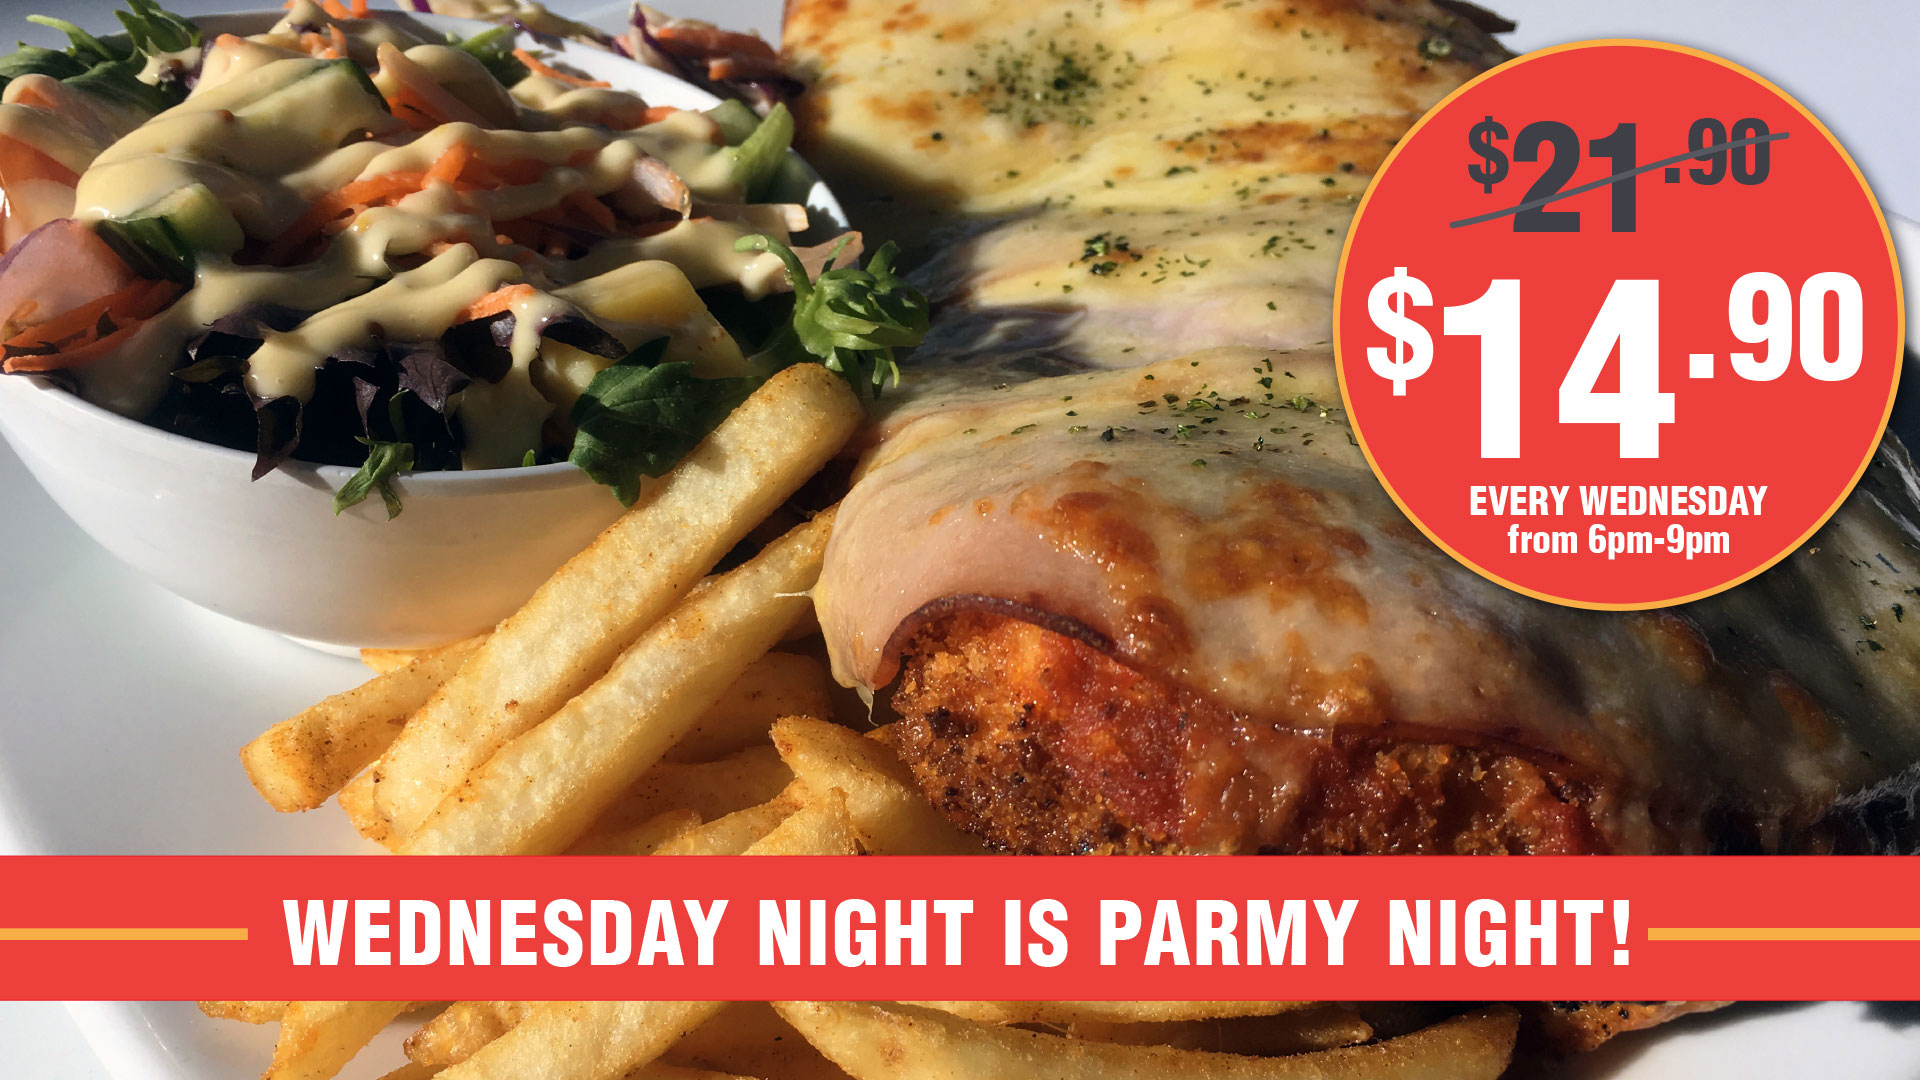 Newtown Parmy Night Every Wednesday